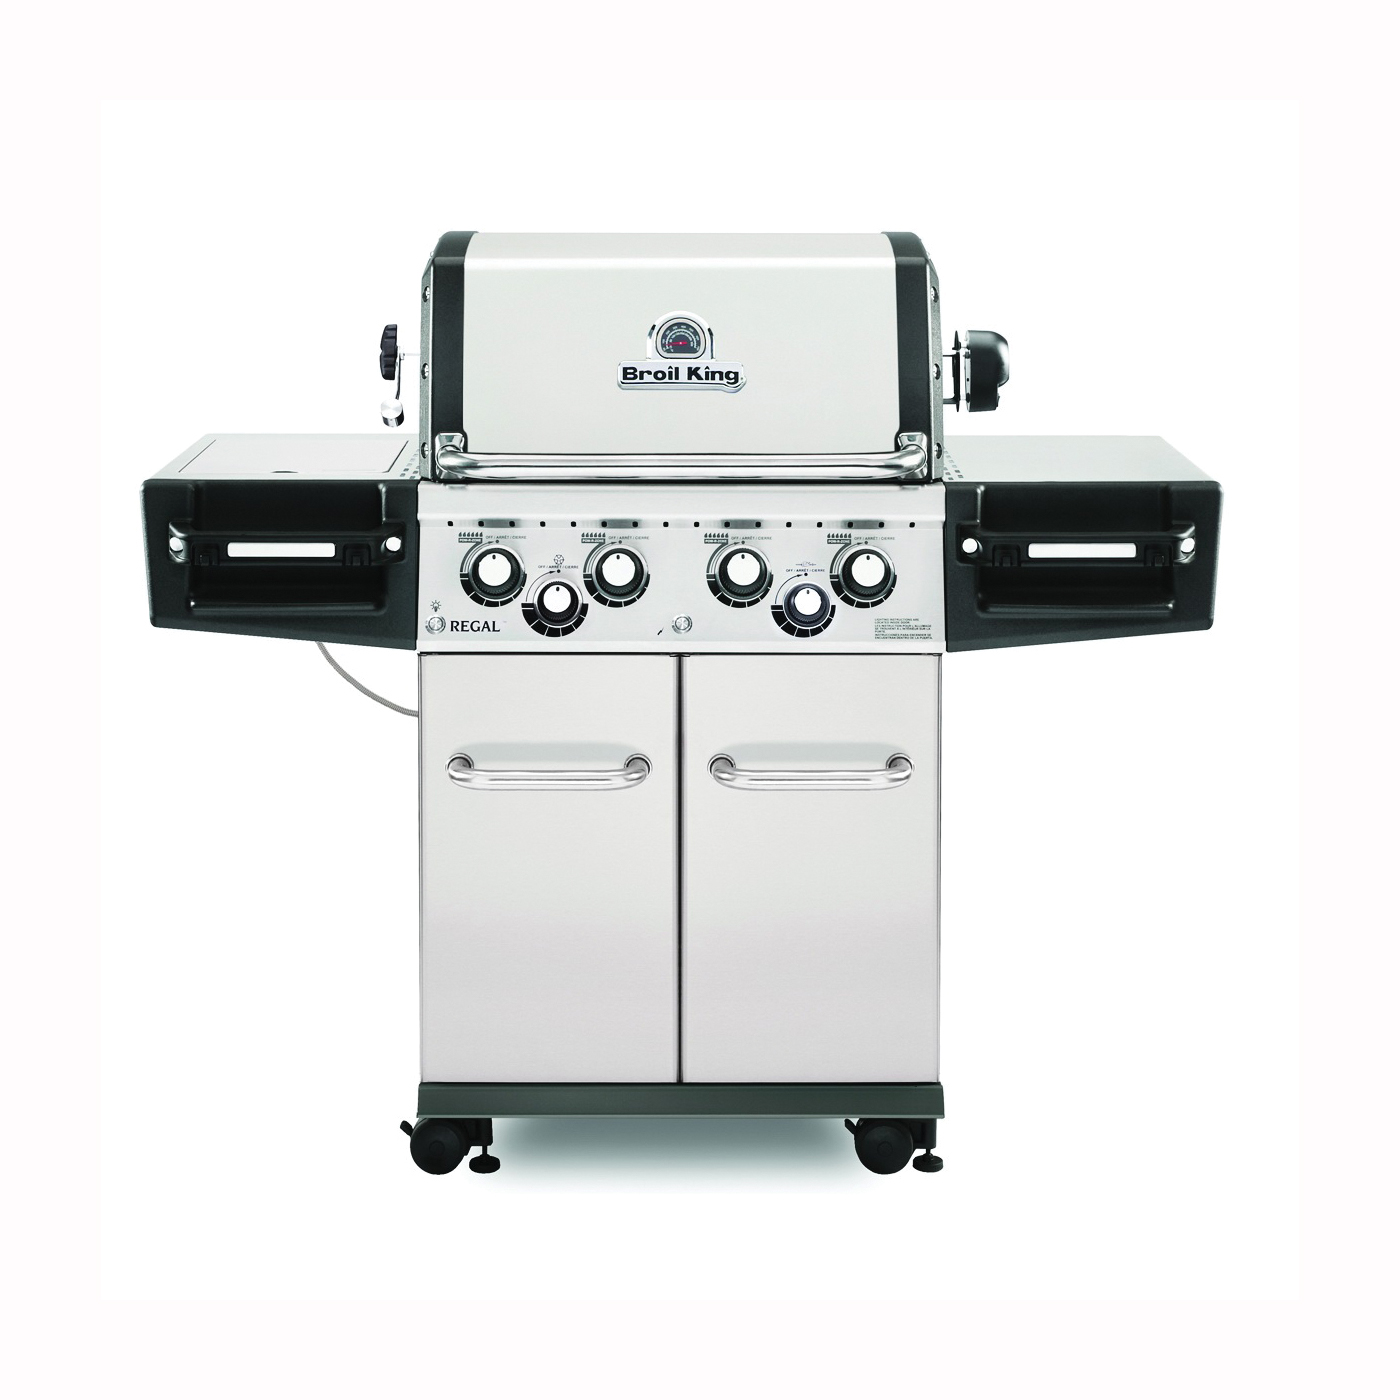 Picture of Broil King Regal 956347 Gas Grill, 55000 Btu/hr BTU, Natural Gas, 4 -Burner, 500 sq-in Primary Cooking Surface